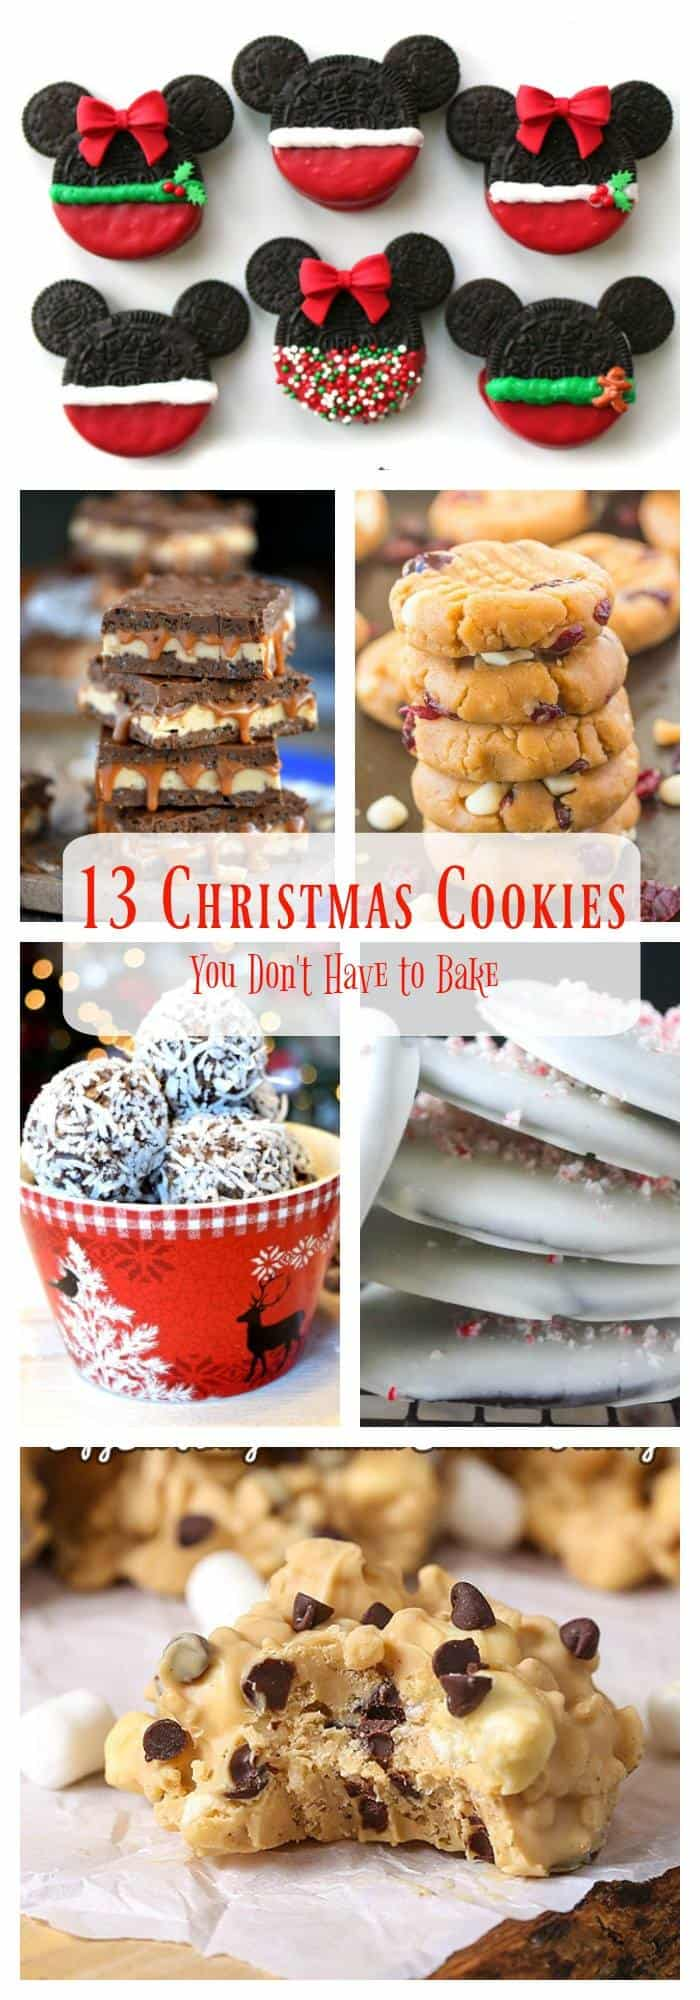 13 Christmas Cookies You Don\'t Have to Bake! - The Organized Mom